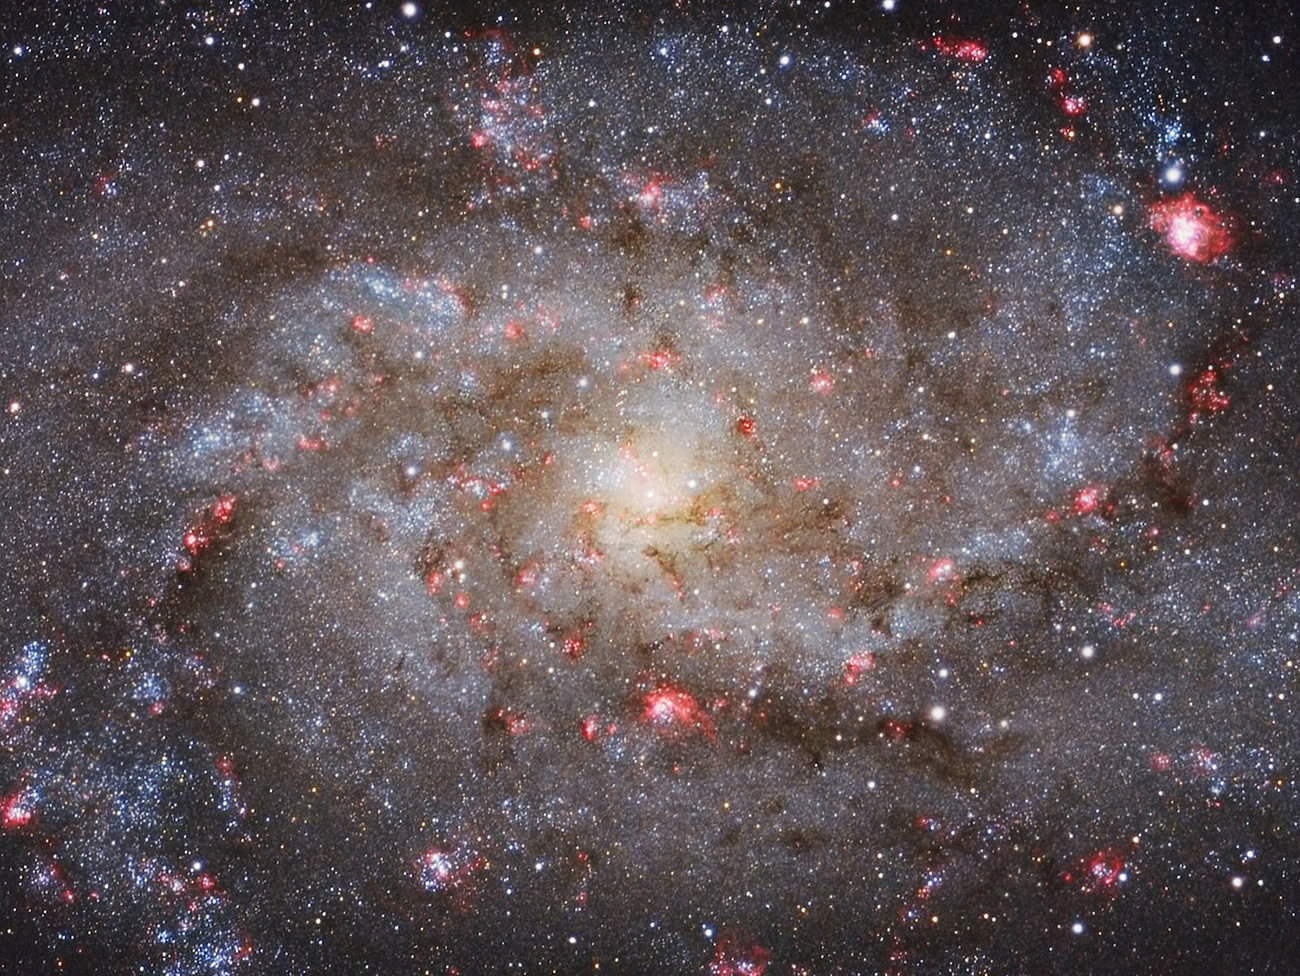 This glorious image of the core of Local Group galaxy Messier33 was captured from Almere, Flevoland, Netherlands by astrophotographer Michael van Doorn using a Celestron C11, ASA Reducer telescope lens, SXVR-H18 camera, 2156mm f/7.7 lens. Image credit: © MichaelvanDoorn.